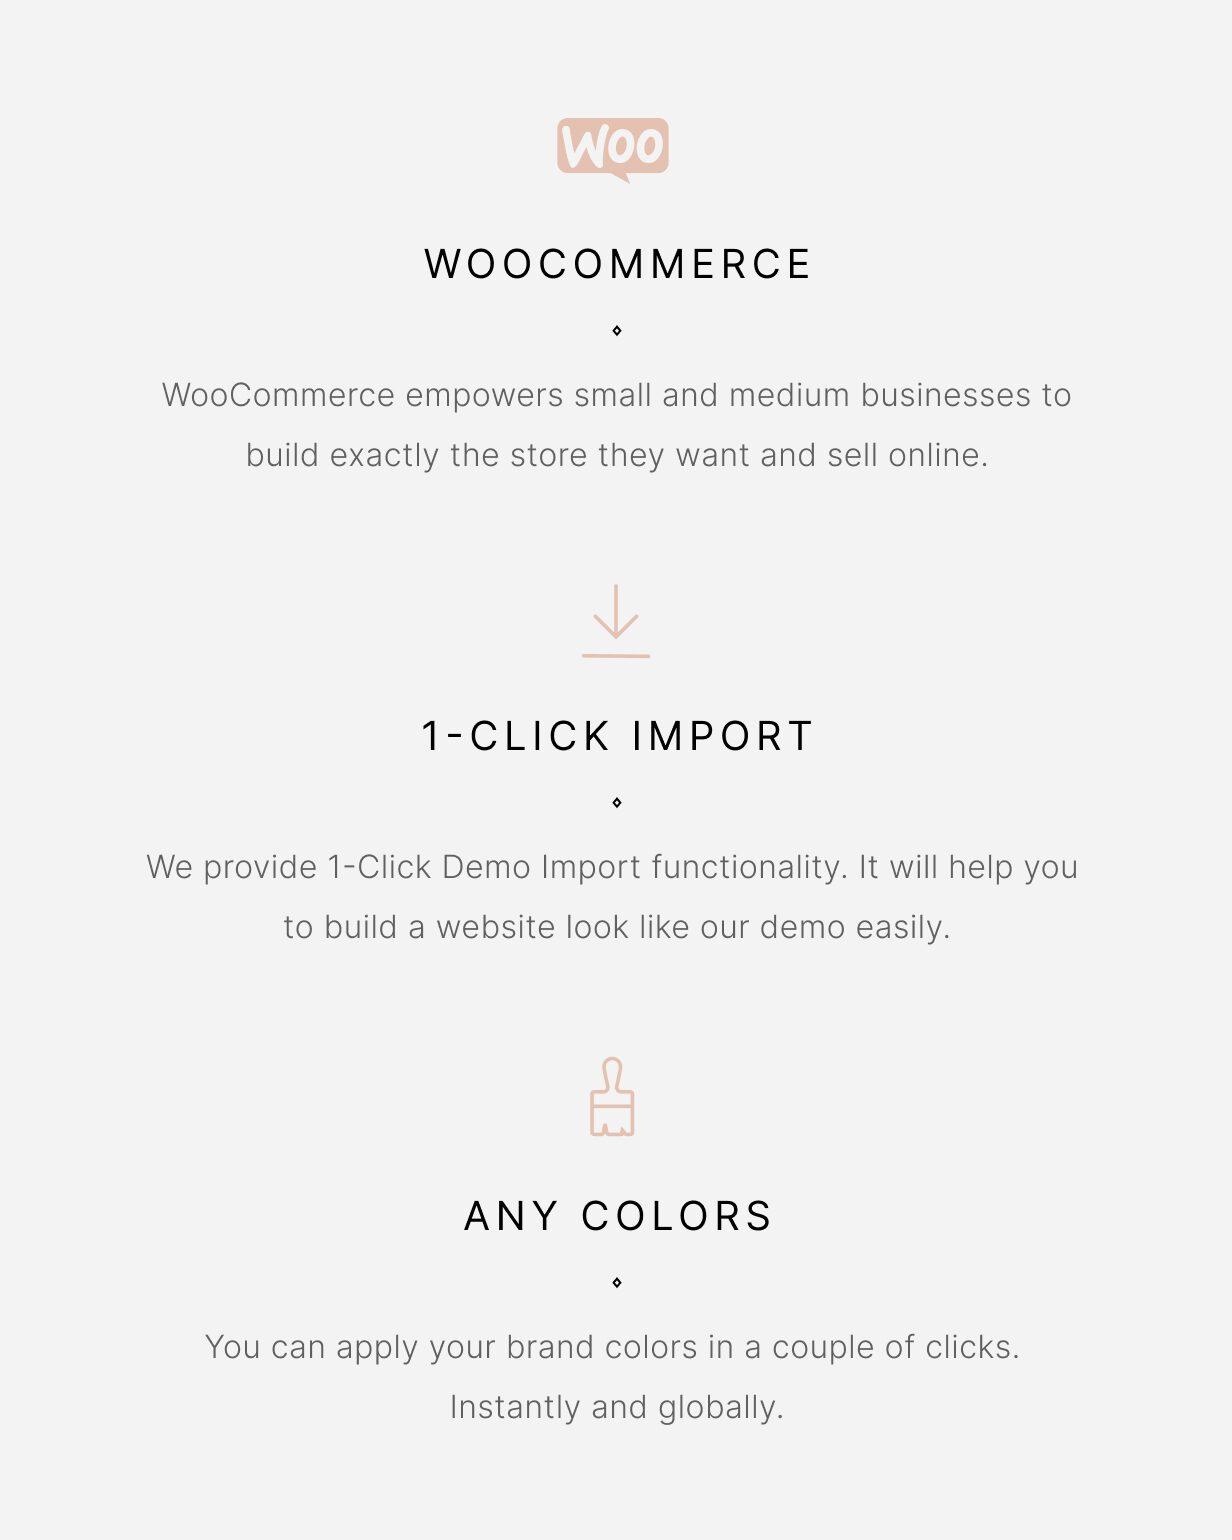 Luchiana - Woocommerce - 1-Click Import - Any Colors